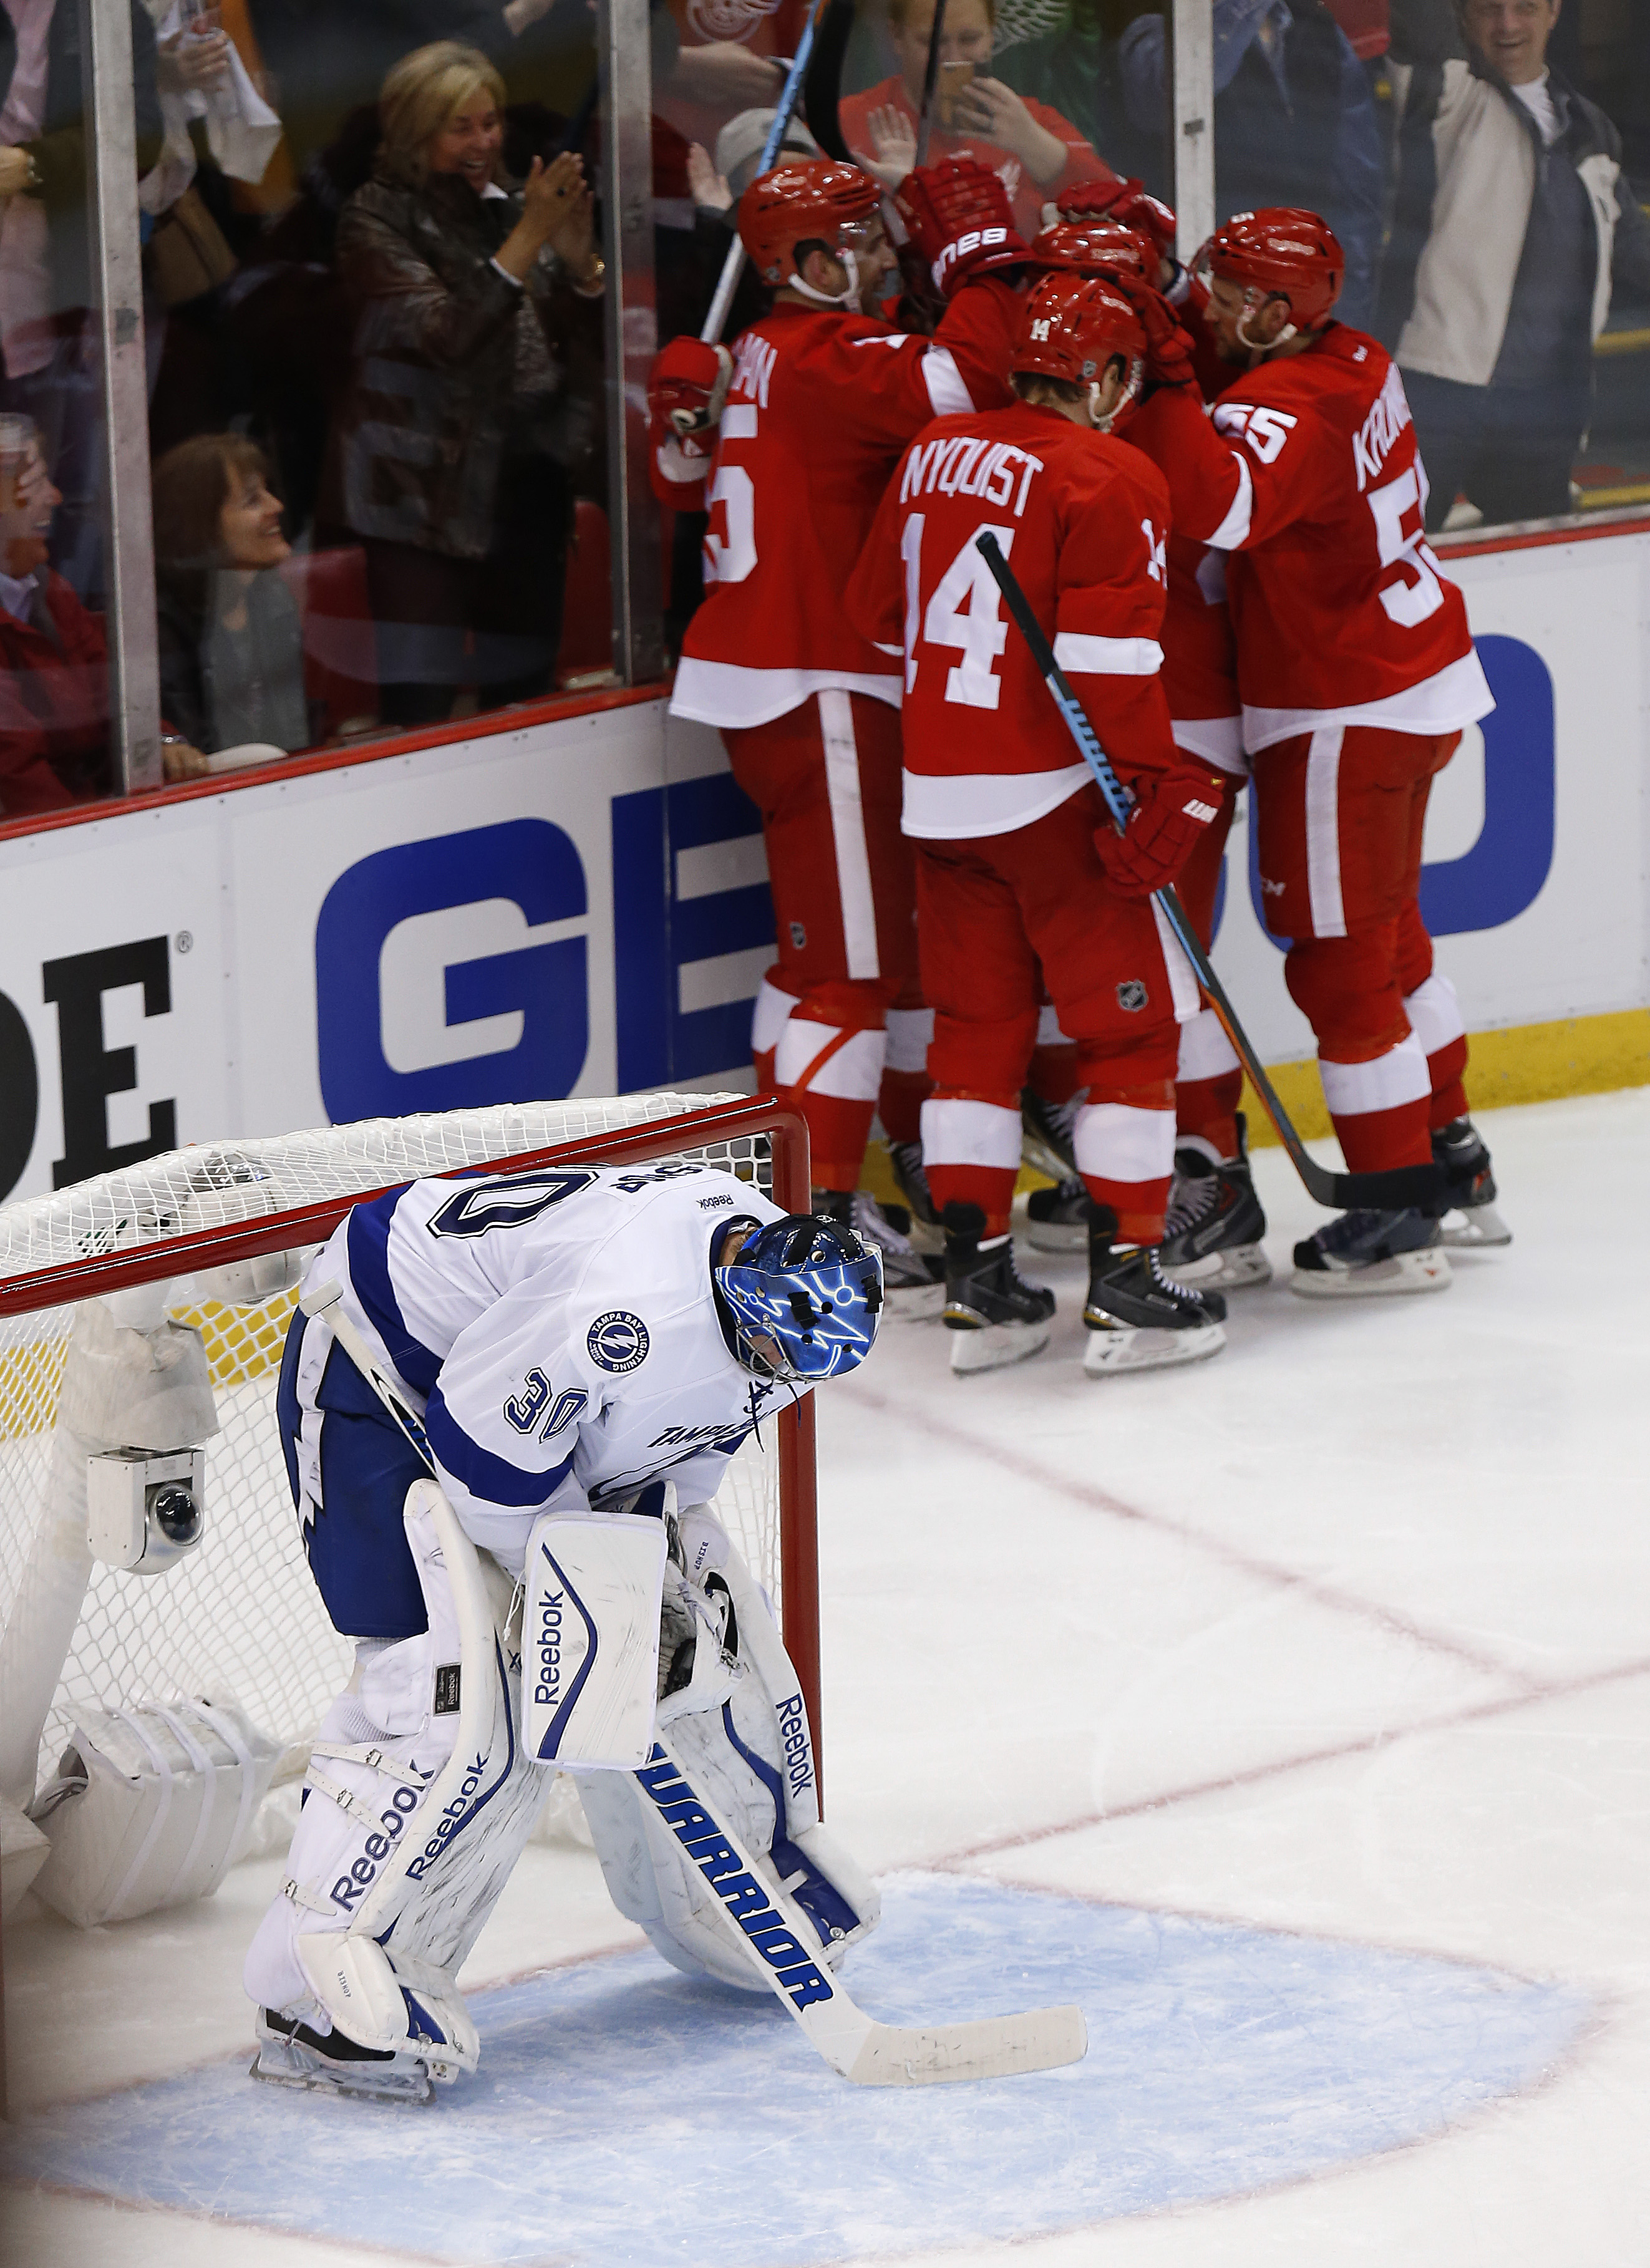 Detroit Red Wings center Riley Sheahan (15) celebrates his goal with teammates as Tampa Bay Lightning goalie Ben Bishop stands in the goal during the third period of Game 3 of a first-round NHL Stanley Cup hockey playoff series  in Detroit Tuesday, April